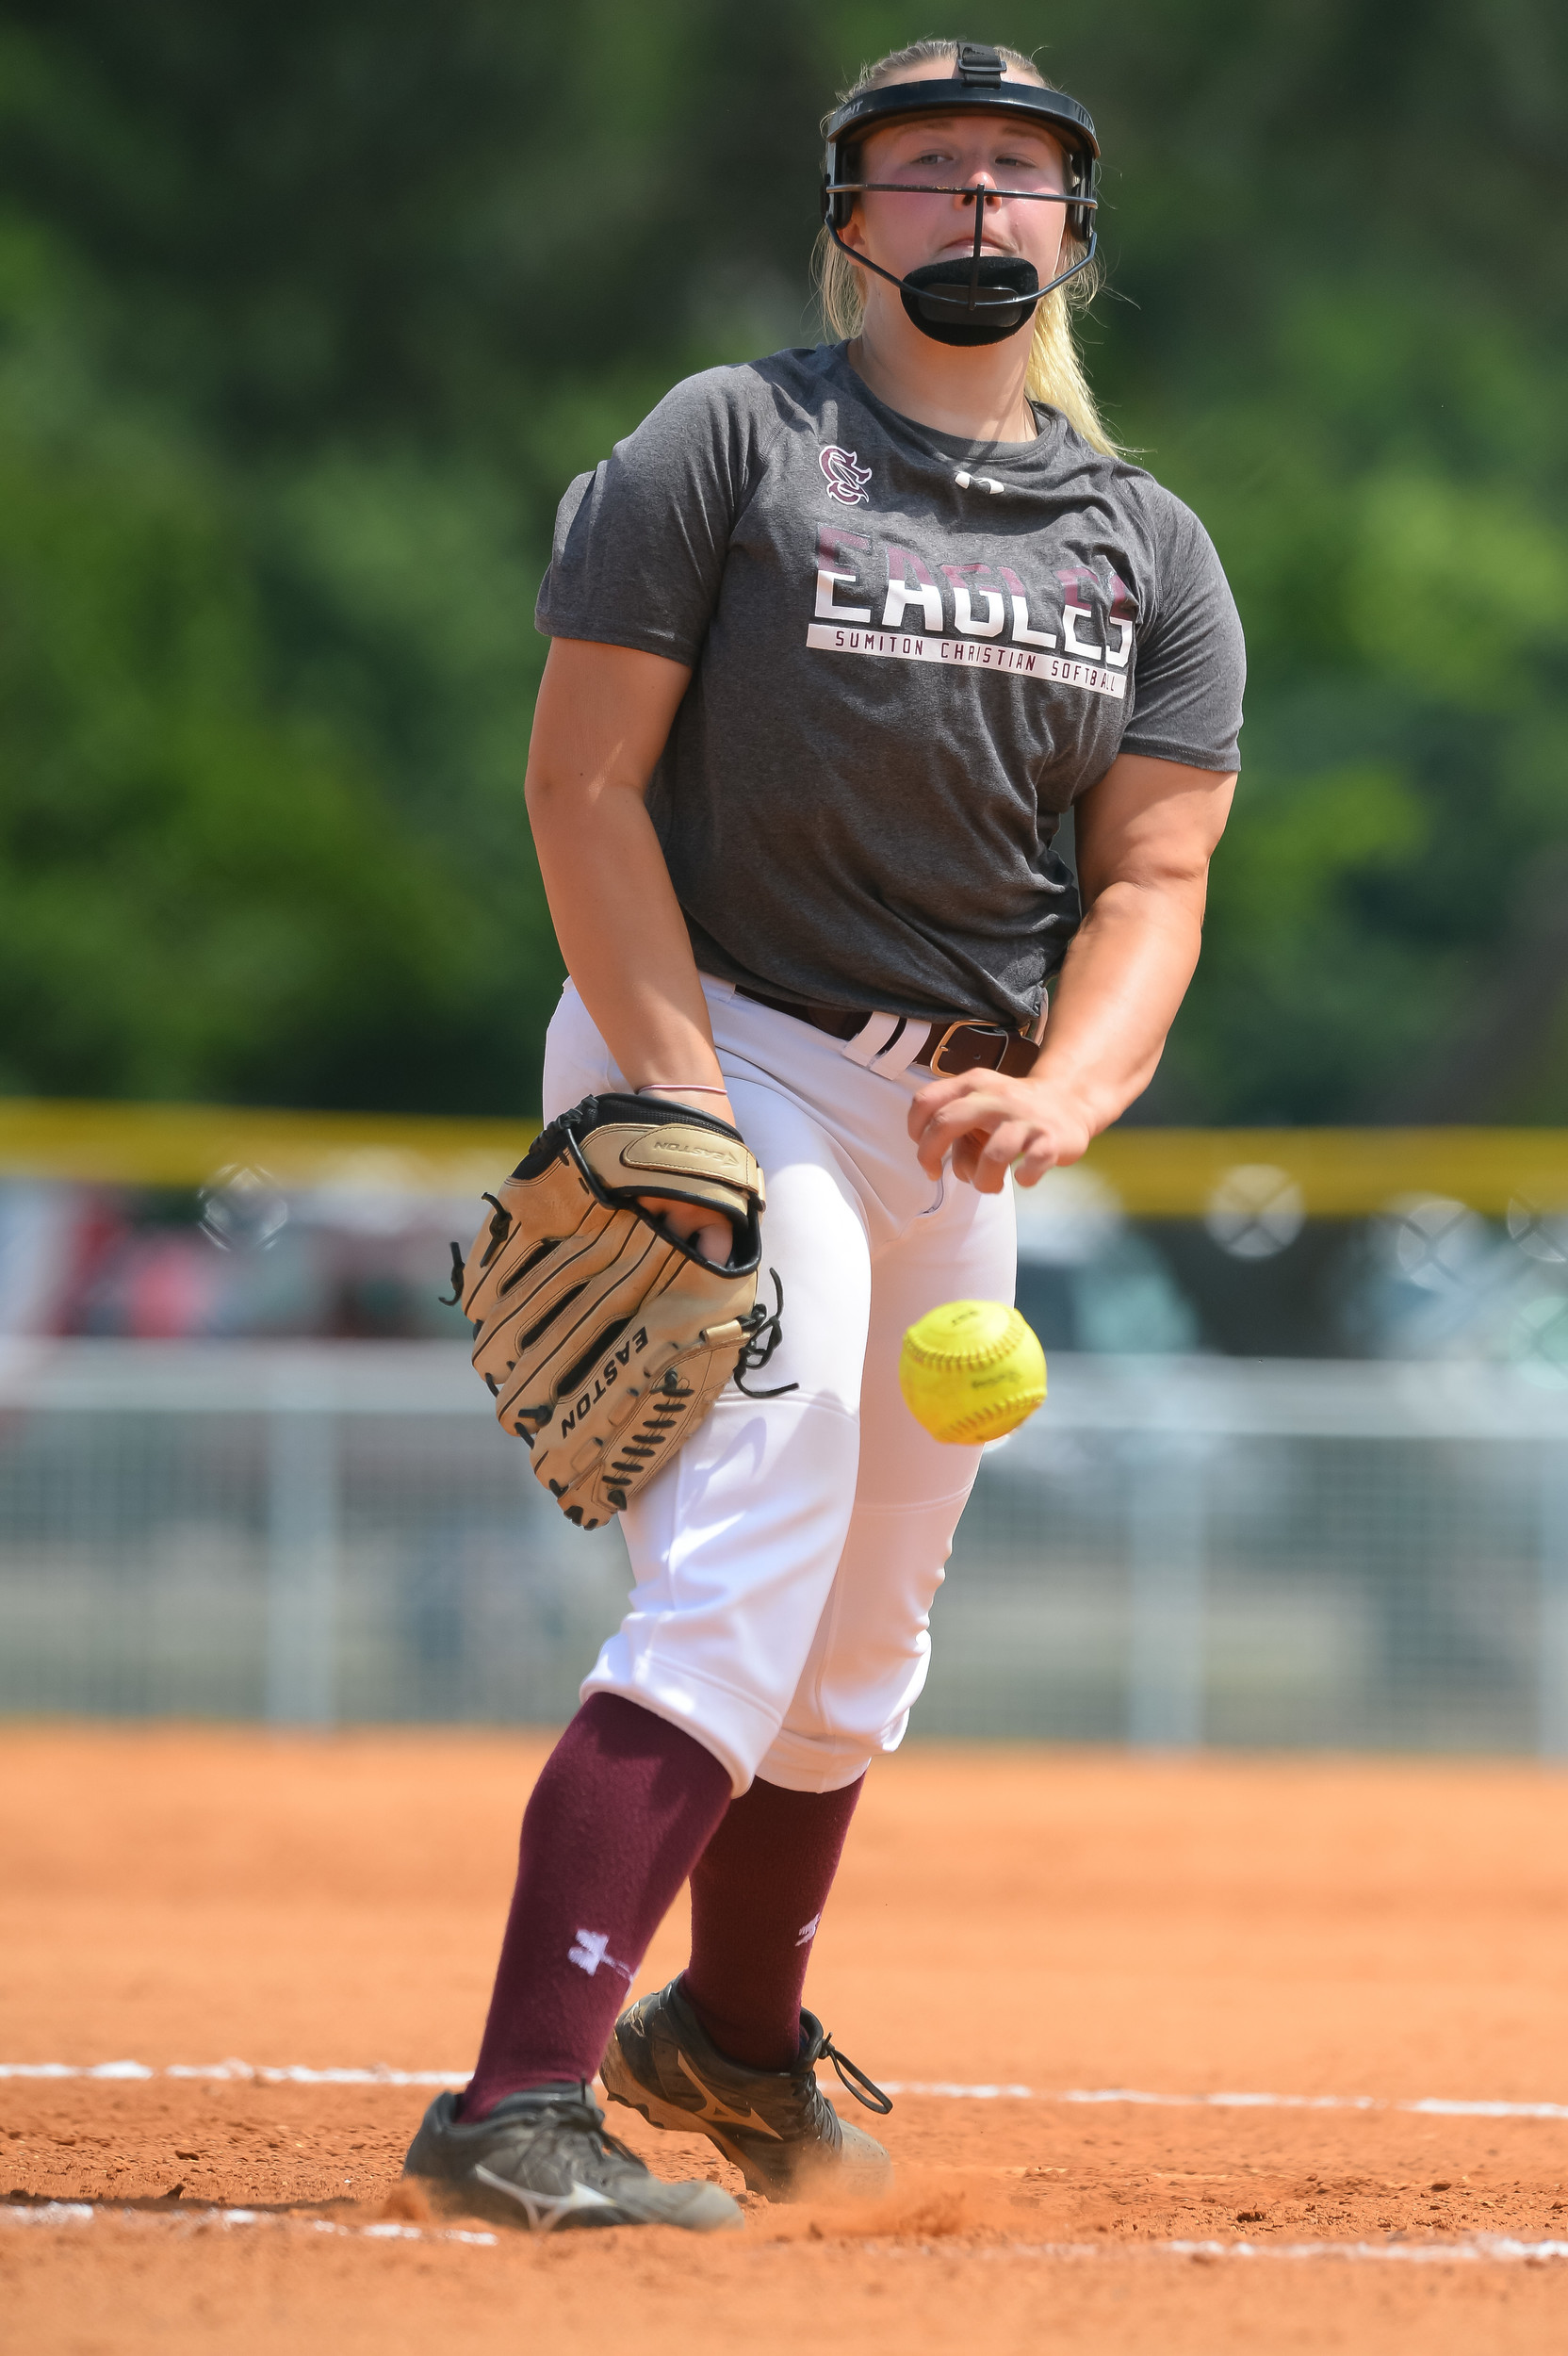 Sumiton Christian's Anna Calloway throws a pitch against Brantley at the State Softball Tournament on Thursday. The Eagles finished second to the Bulldogs, falling 5-1 in the championship game.